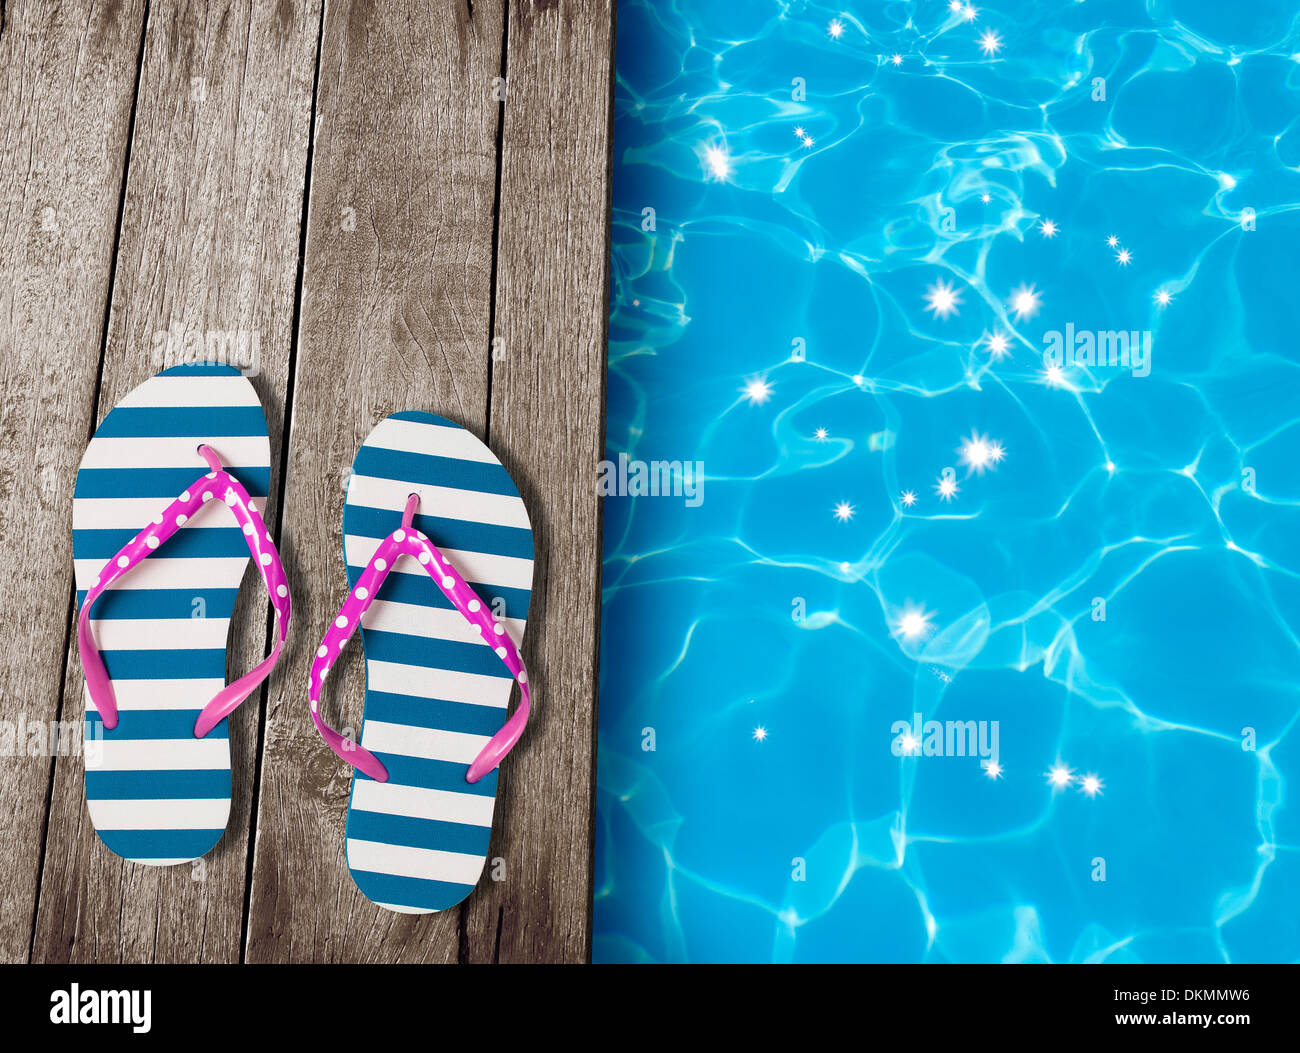 fe70d2659b40d7 flip flop sandals on old wooden boards near swimming pool Stock ...